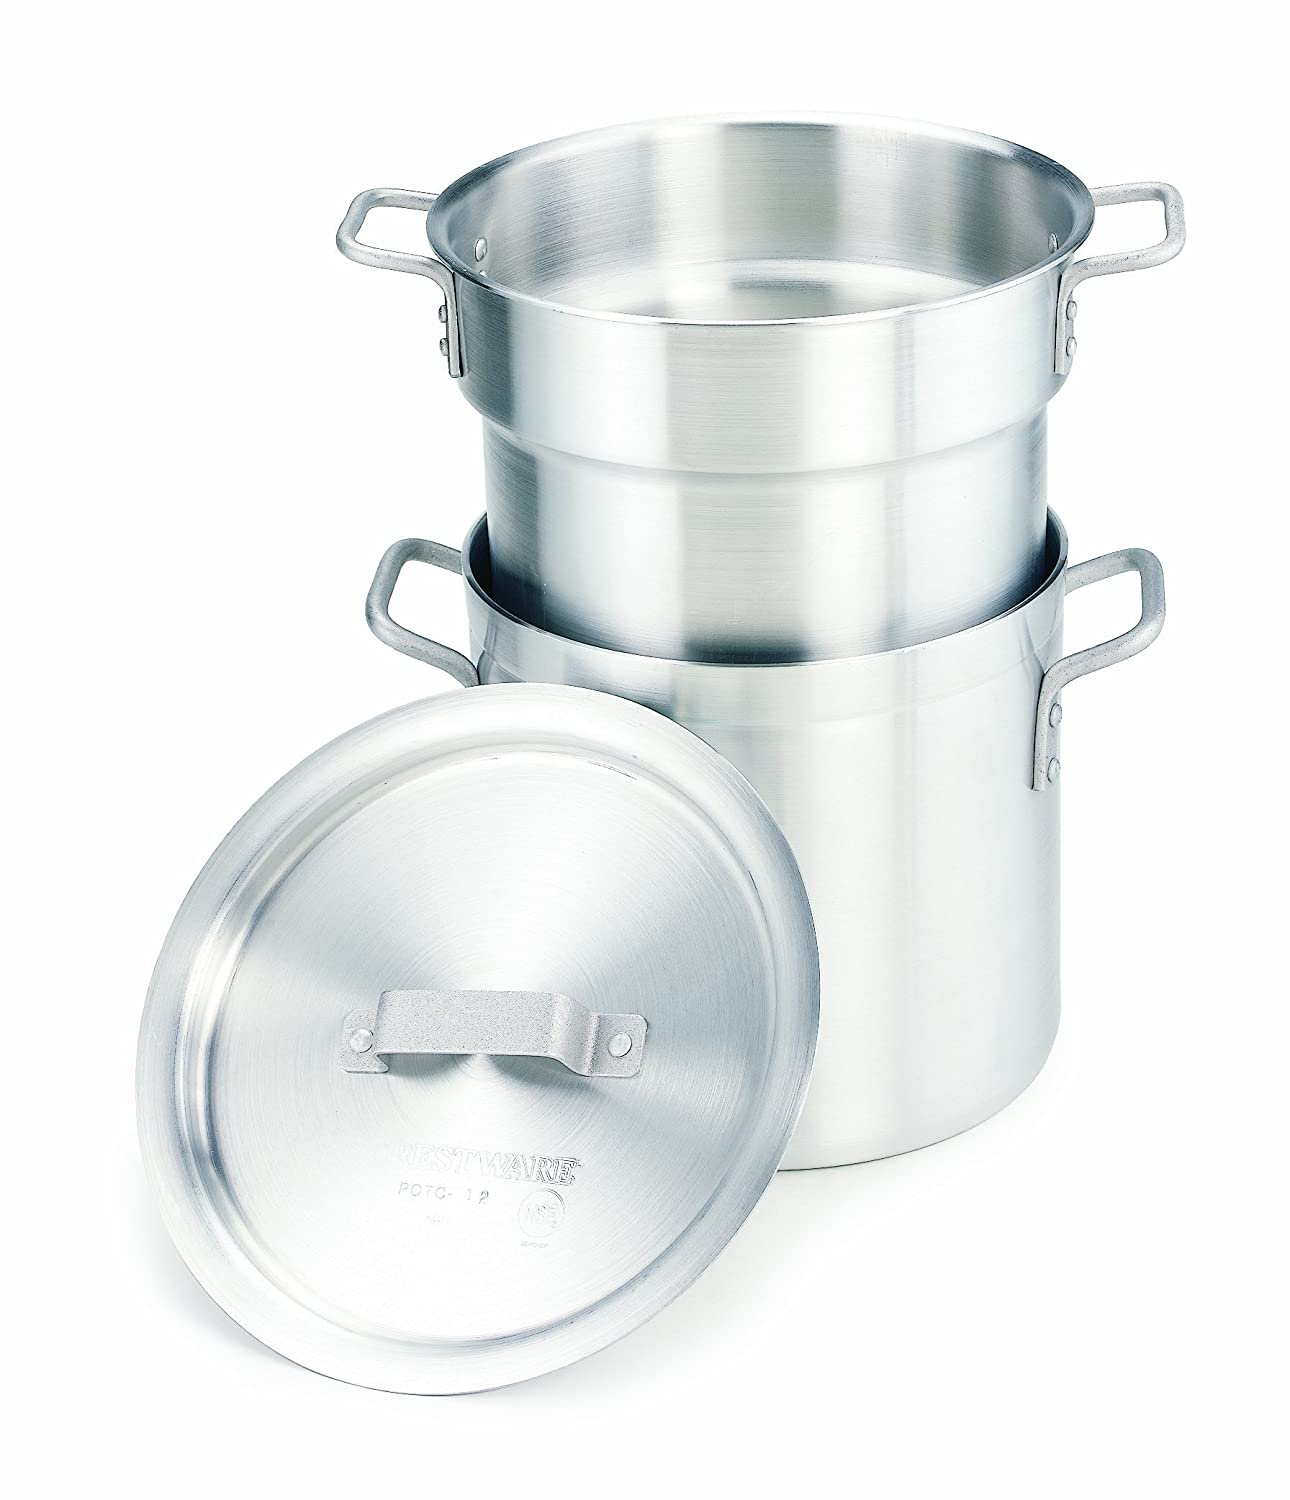 Crestware 12-Quart Heavy Weight Aluminum Double Boiler with 11 Quarter Inset Capacity Crestware Commercial Kitchen DBL12